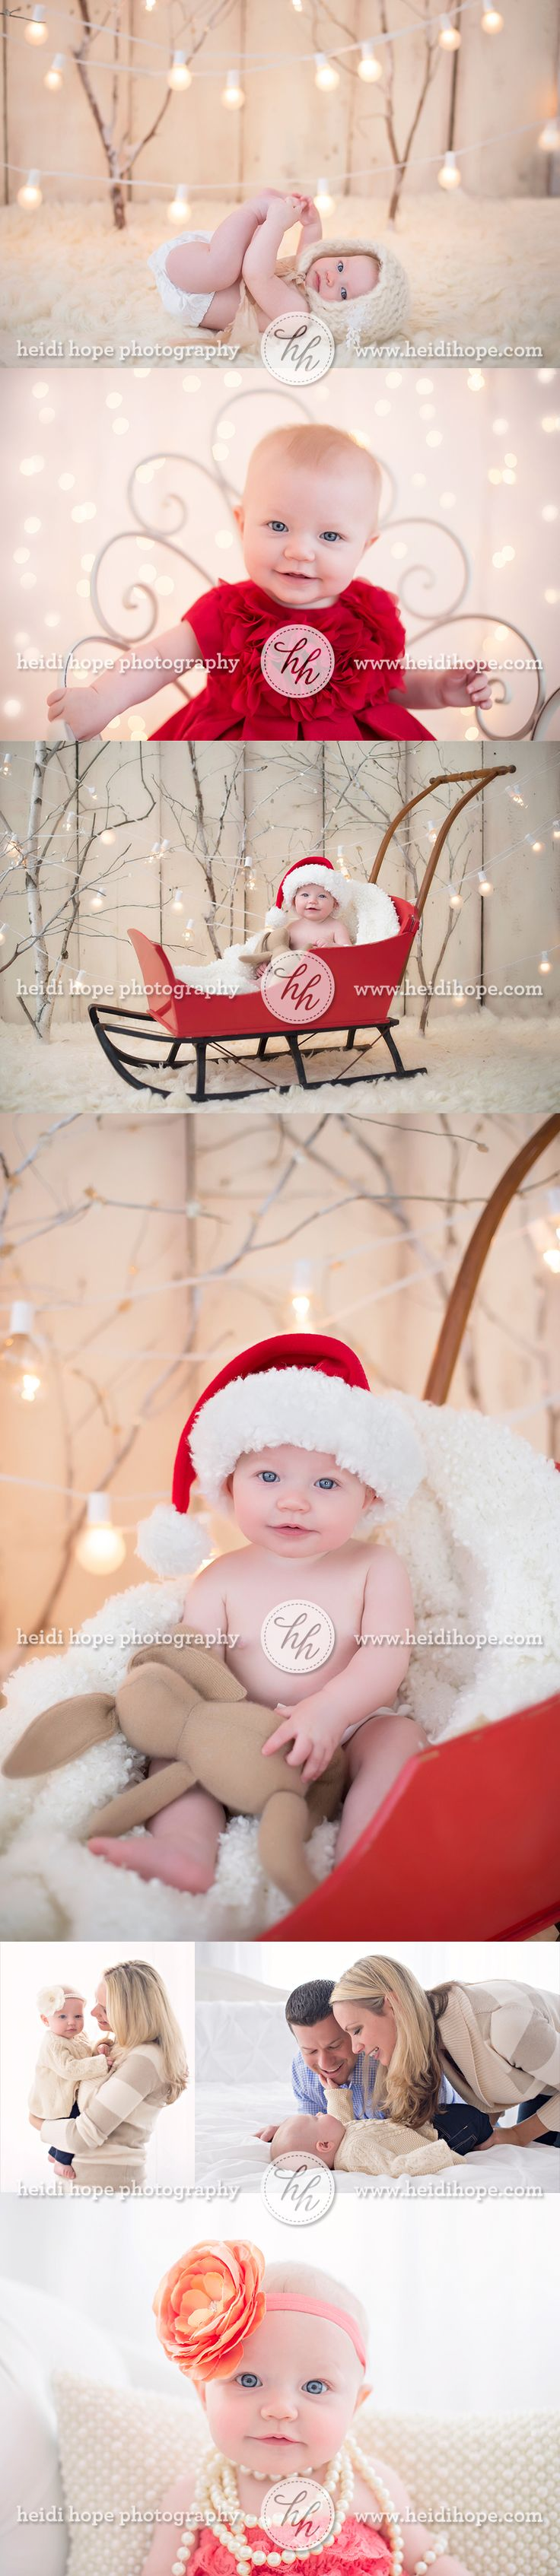 6 month old baby A's Christmas family portraits sneak preview!